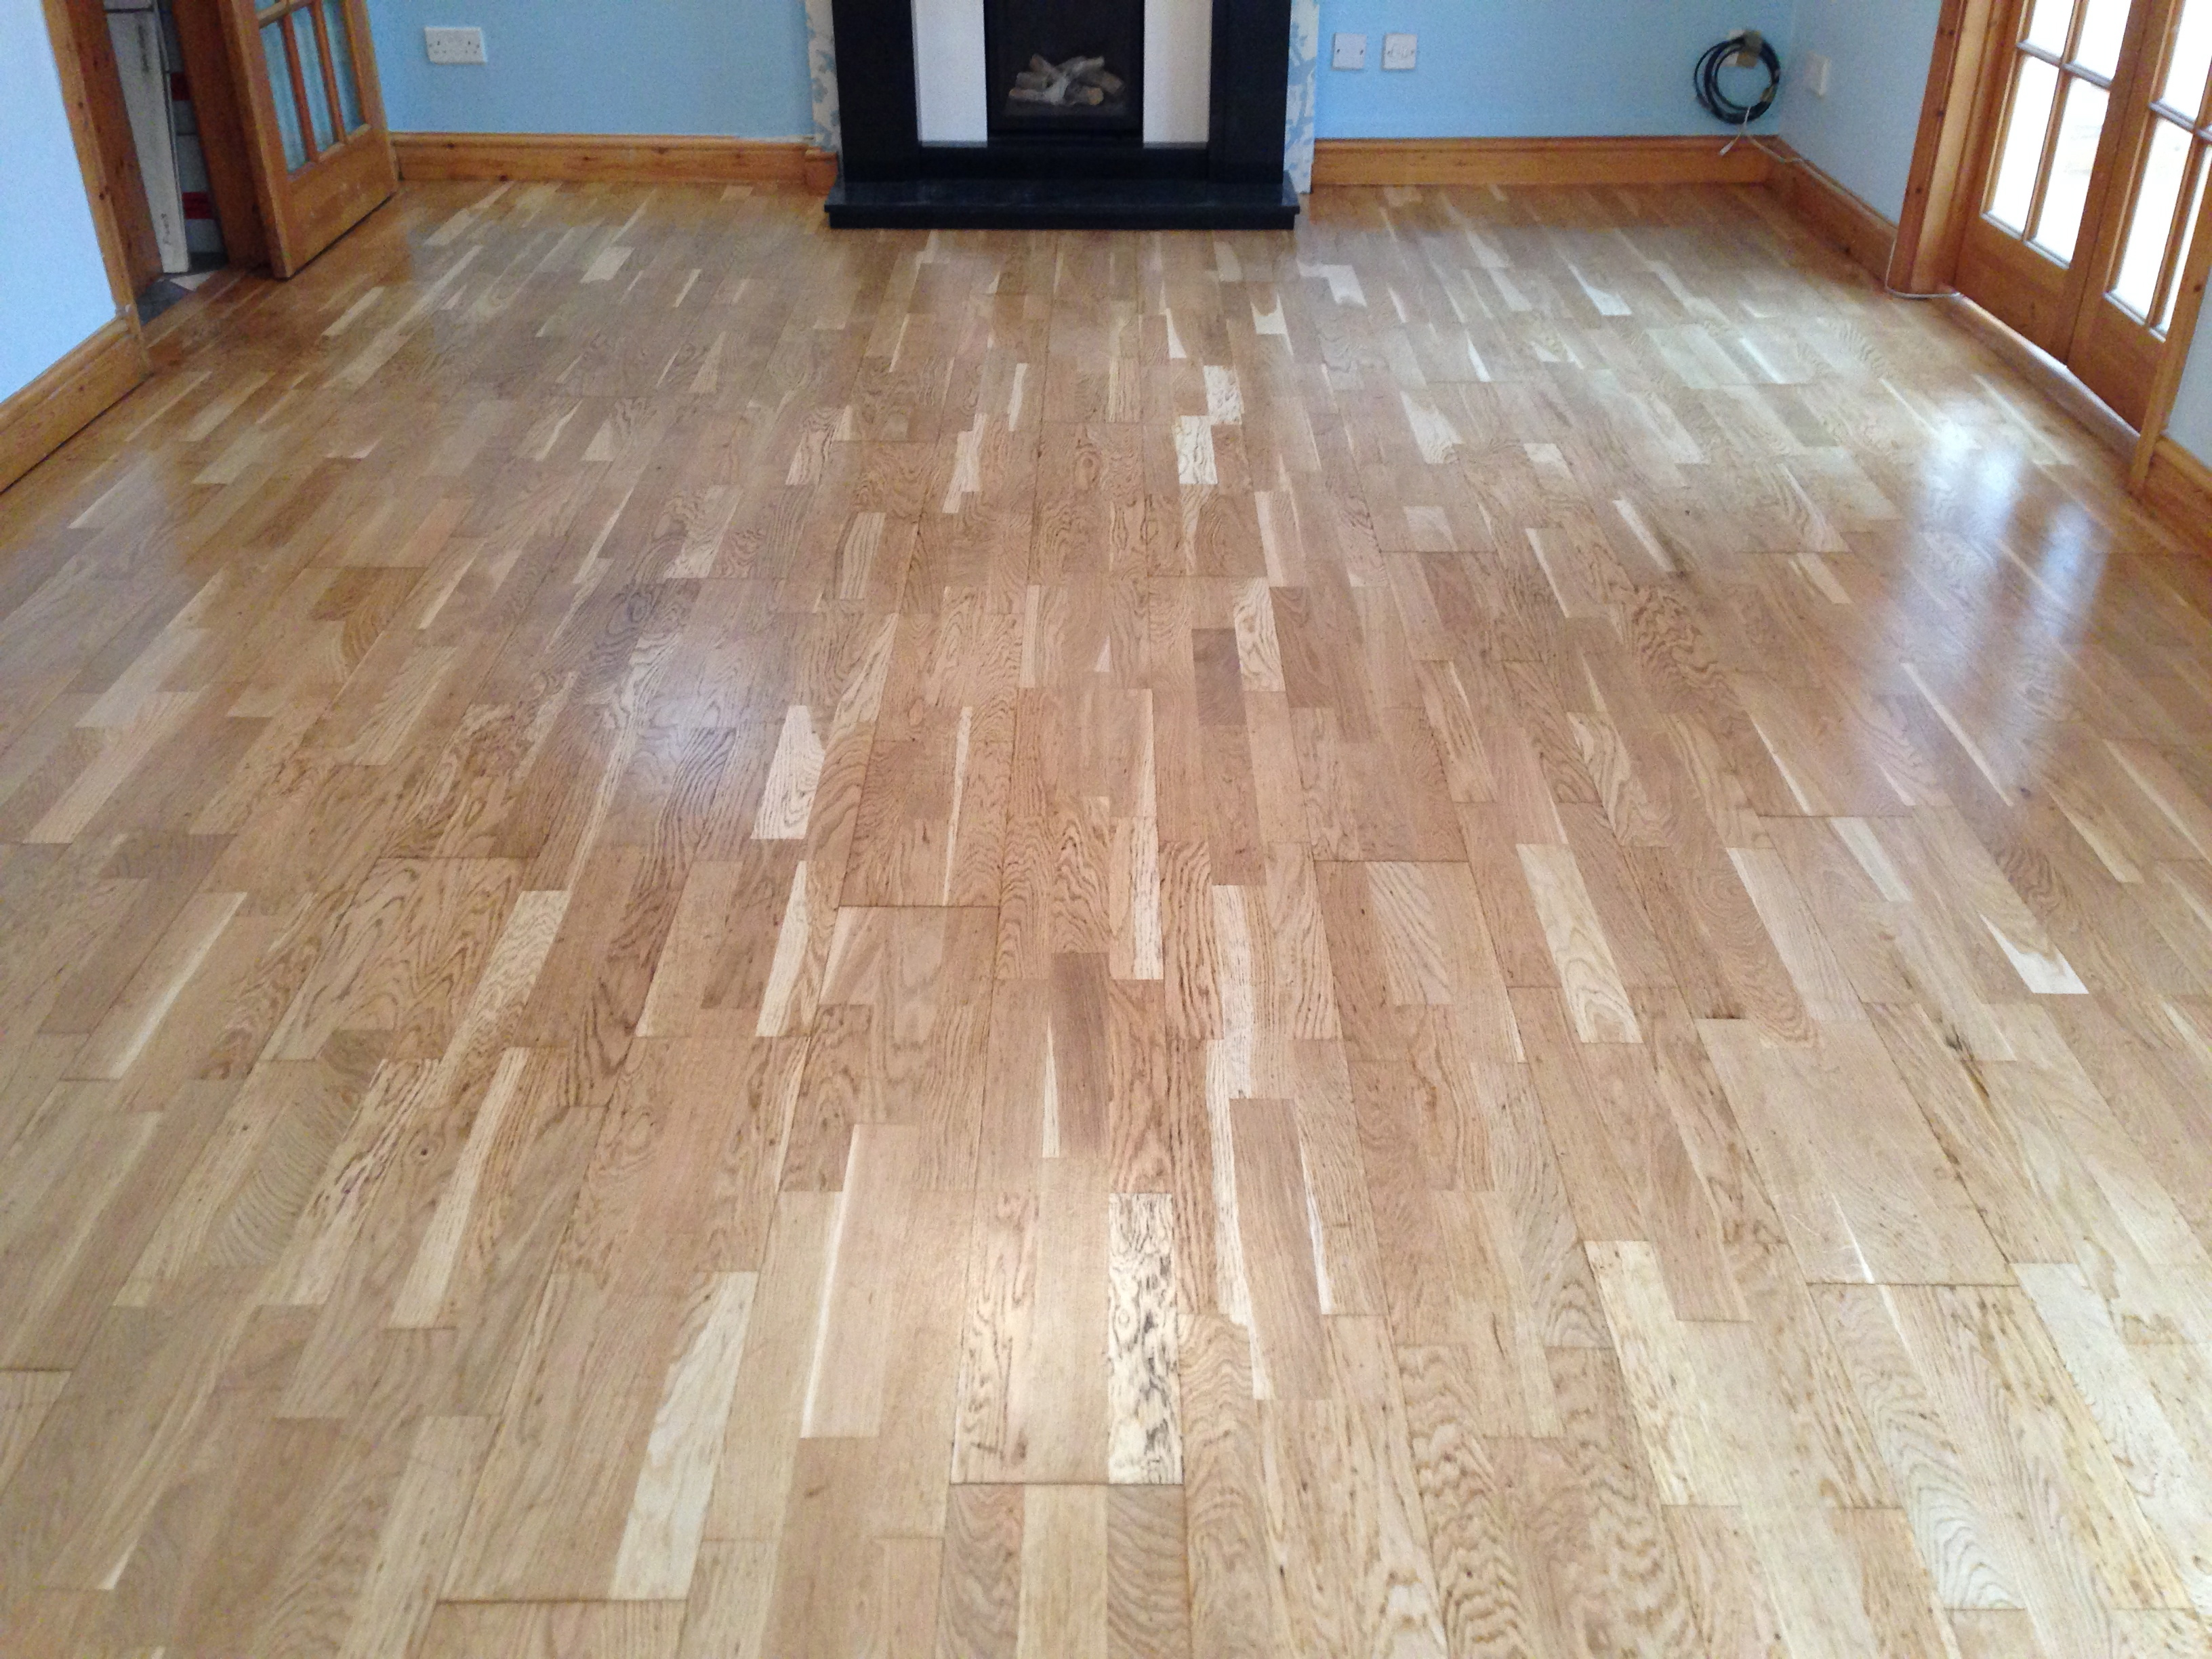 polish way old laminate floors with tile bathroom floorsextraordinary floor flooring tiles best cleaning to